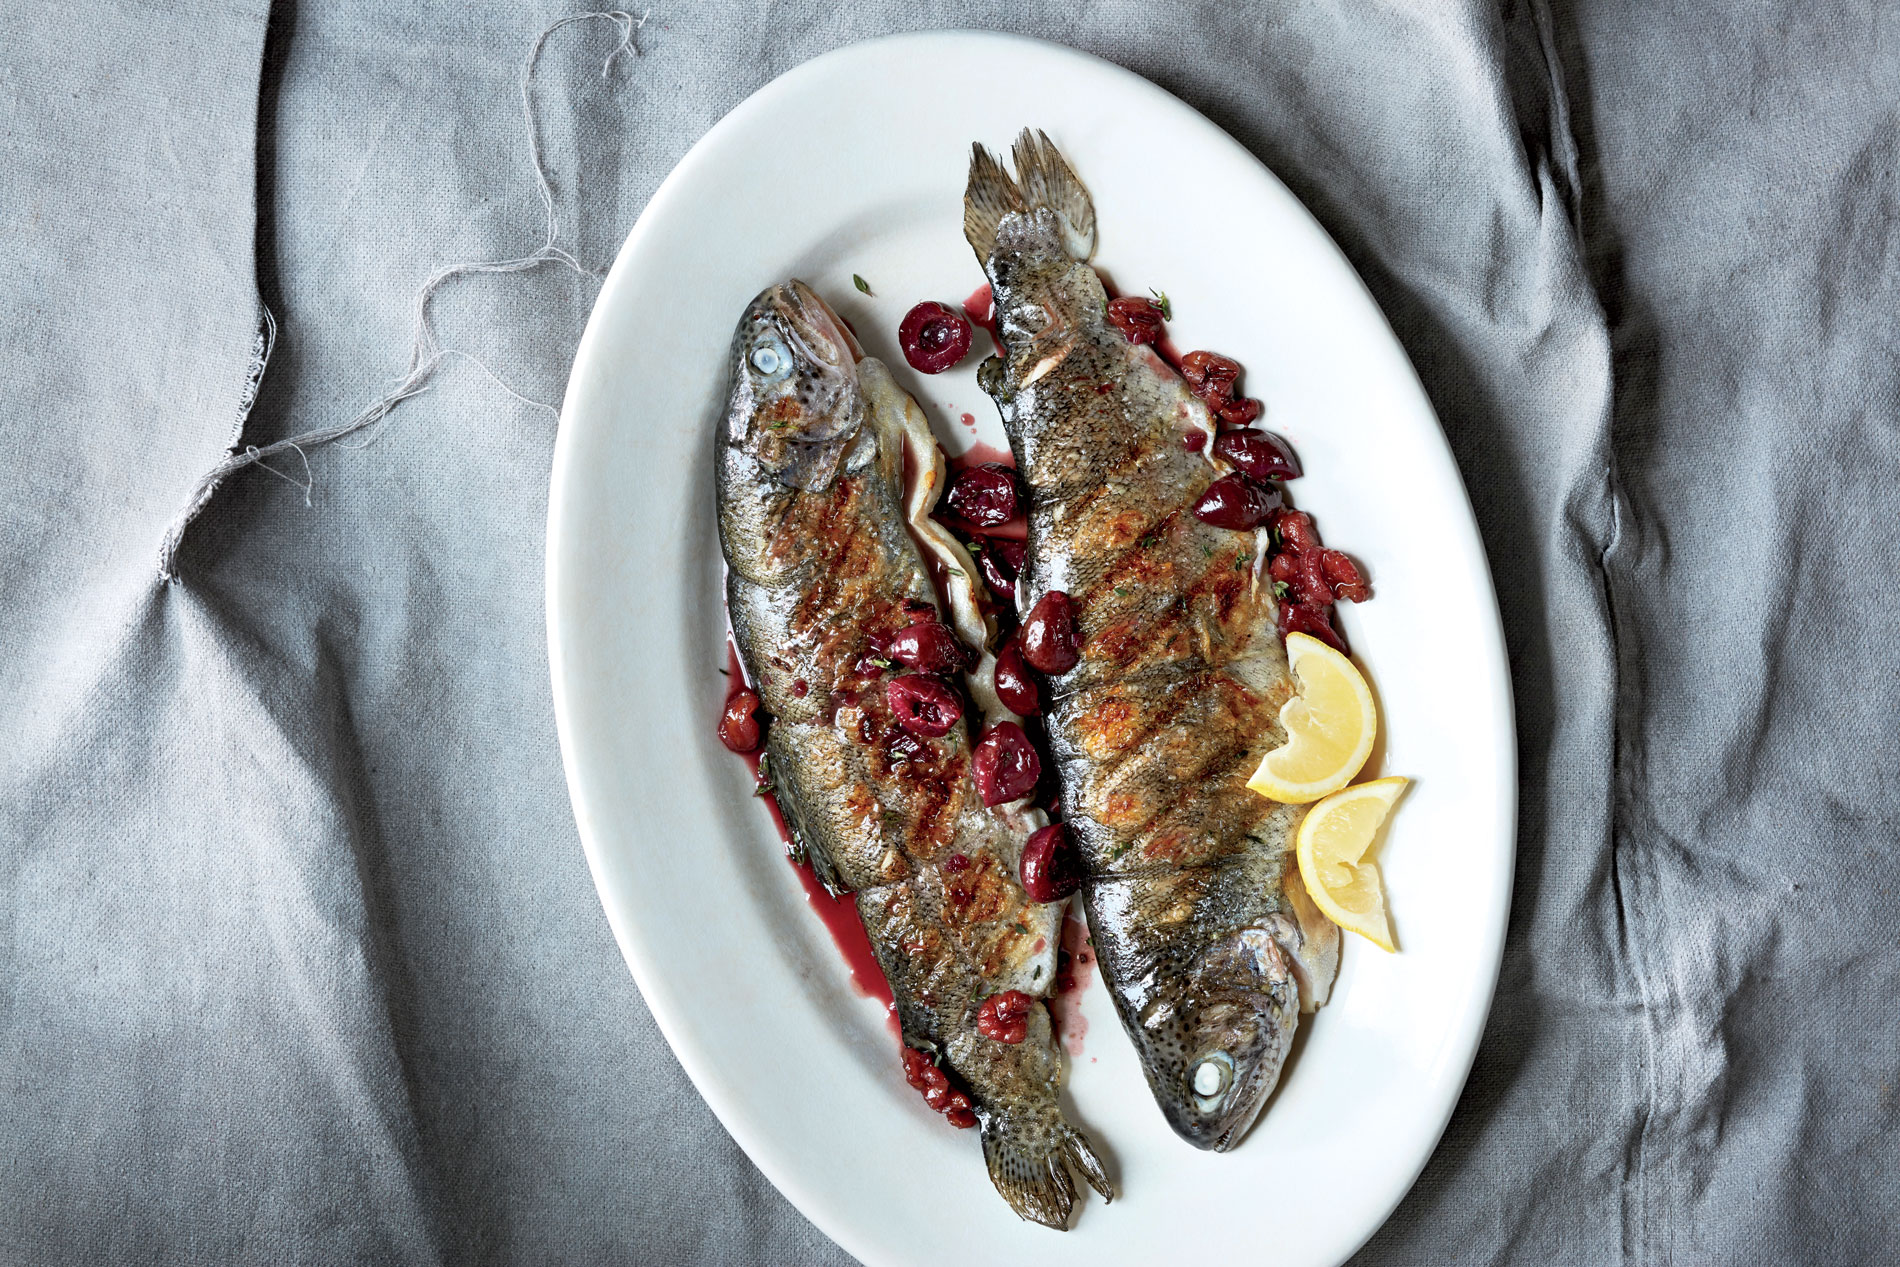 ck-Grilled Trout with Cherry Compote Image